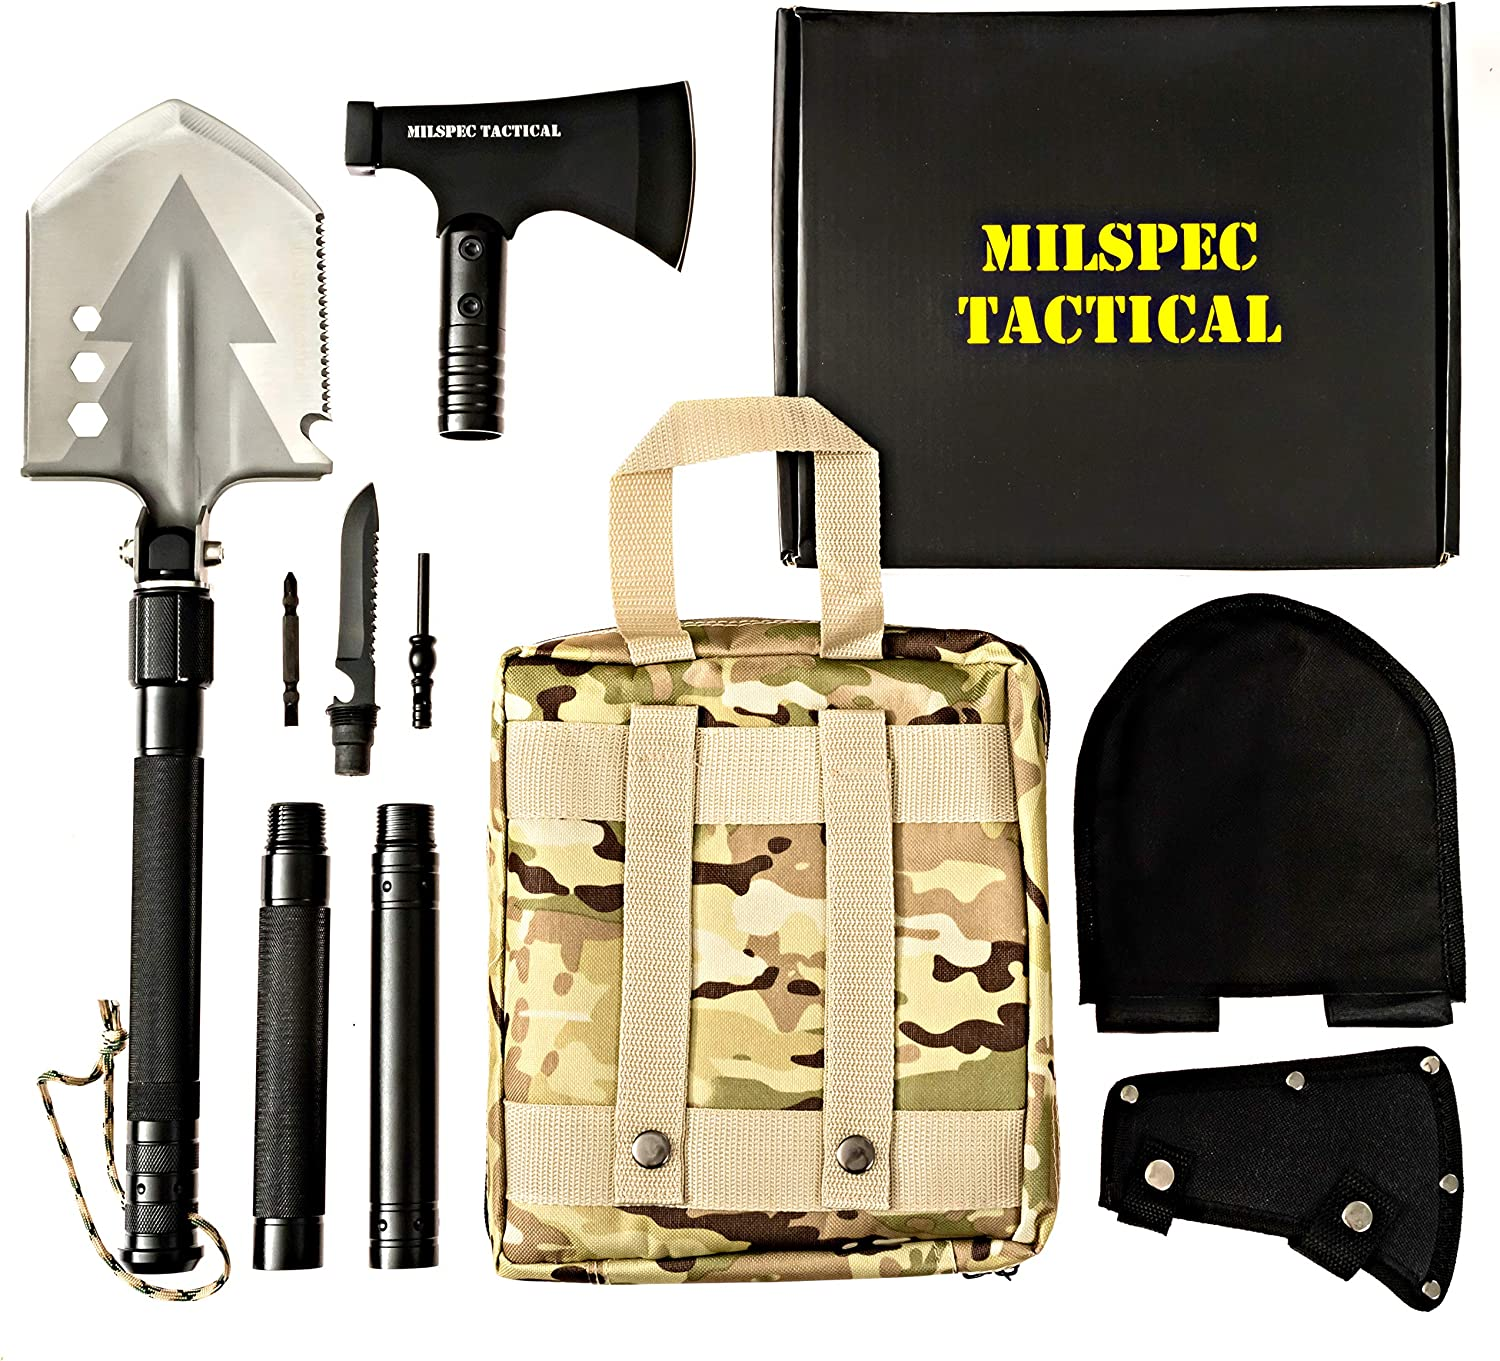 Military Folding Shovel Camping Survival Tactical Emergency Gear Outdoor Tools